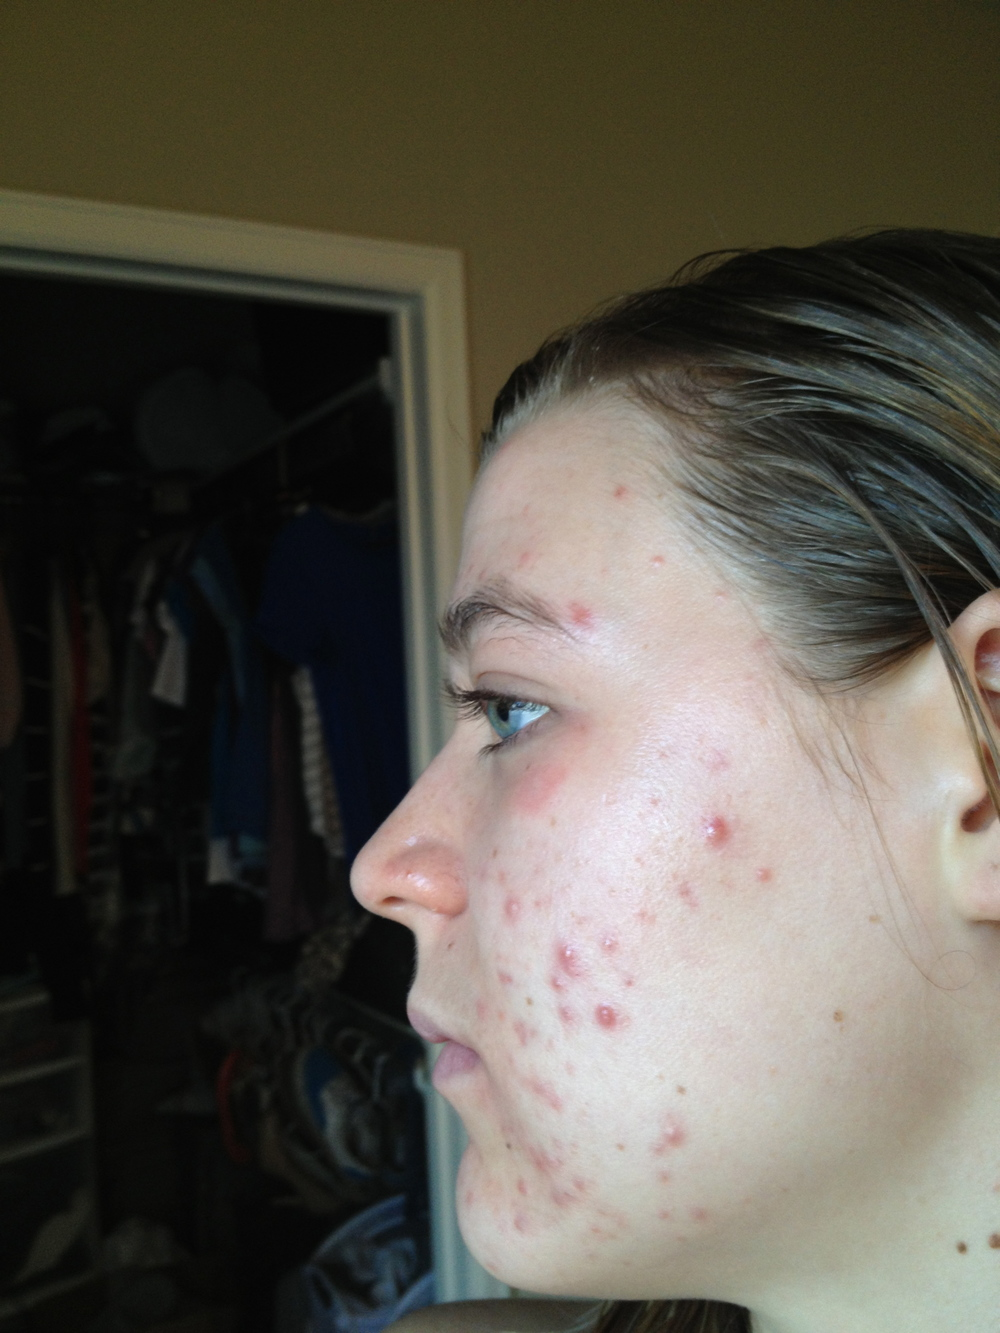 left side: my acne at it's worst (April 2013)